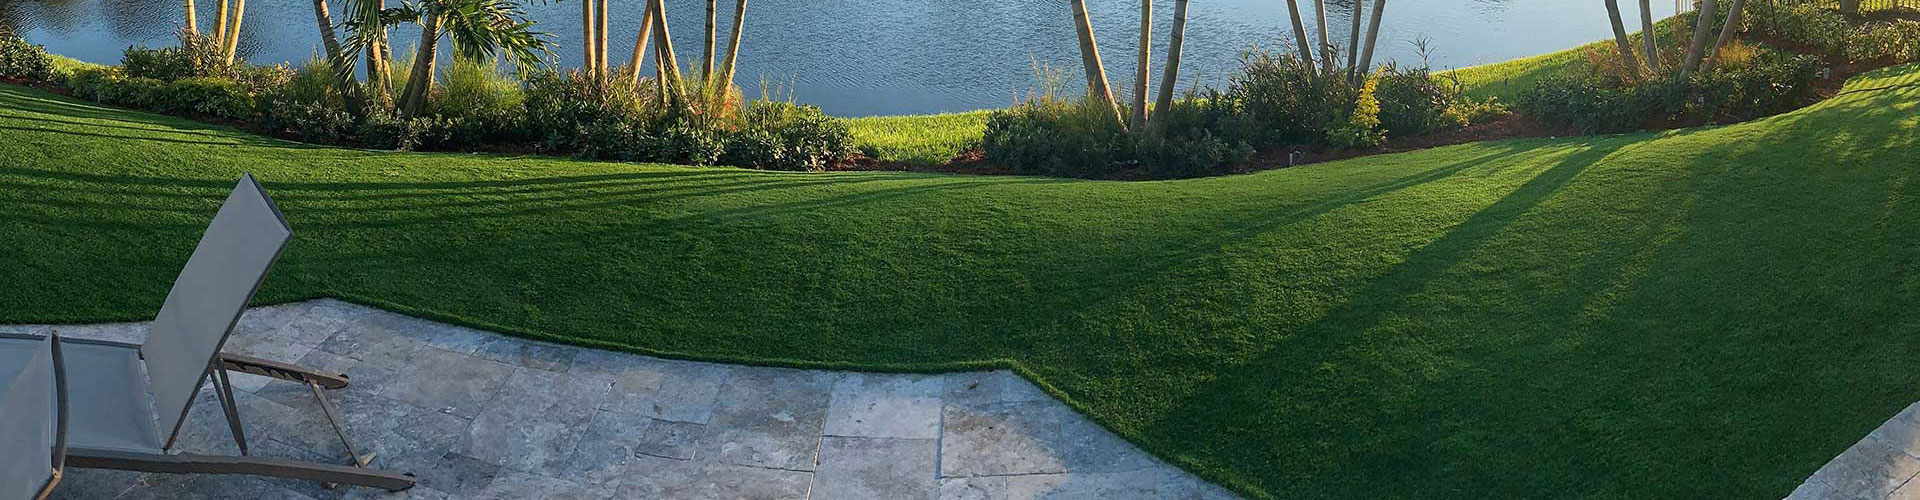 Fort Lauderdale Artificial Grass Installation, Putting Green Installation and Synthetic Turf Installation